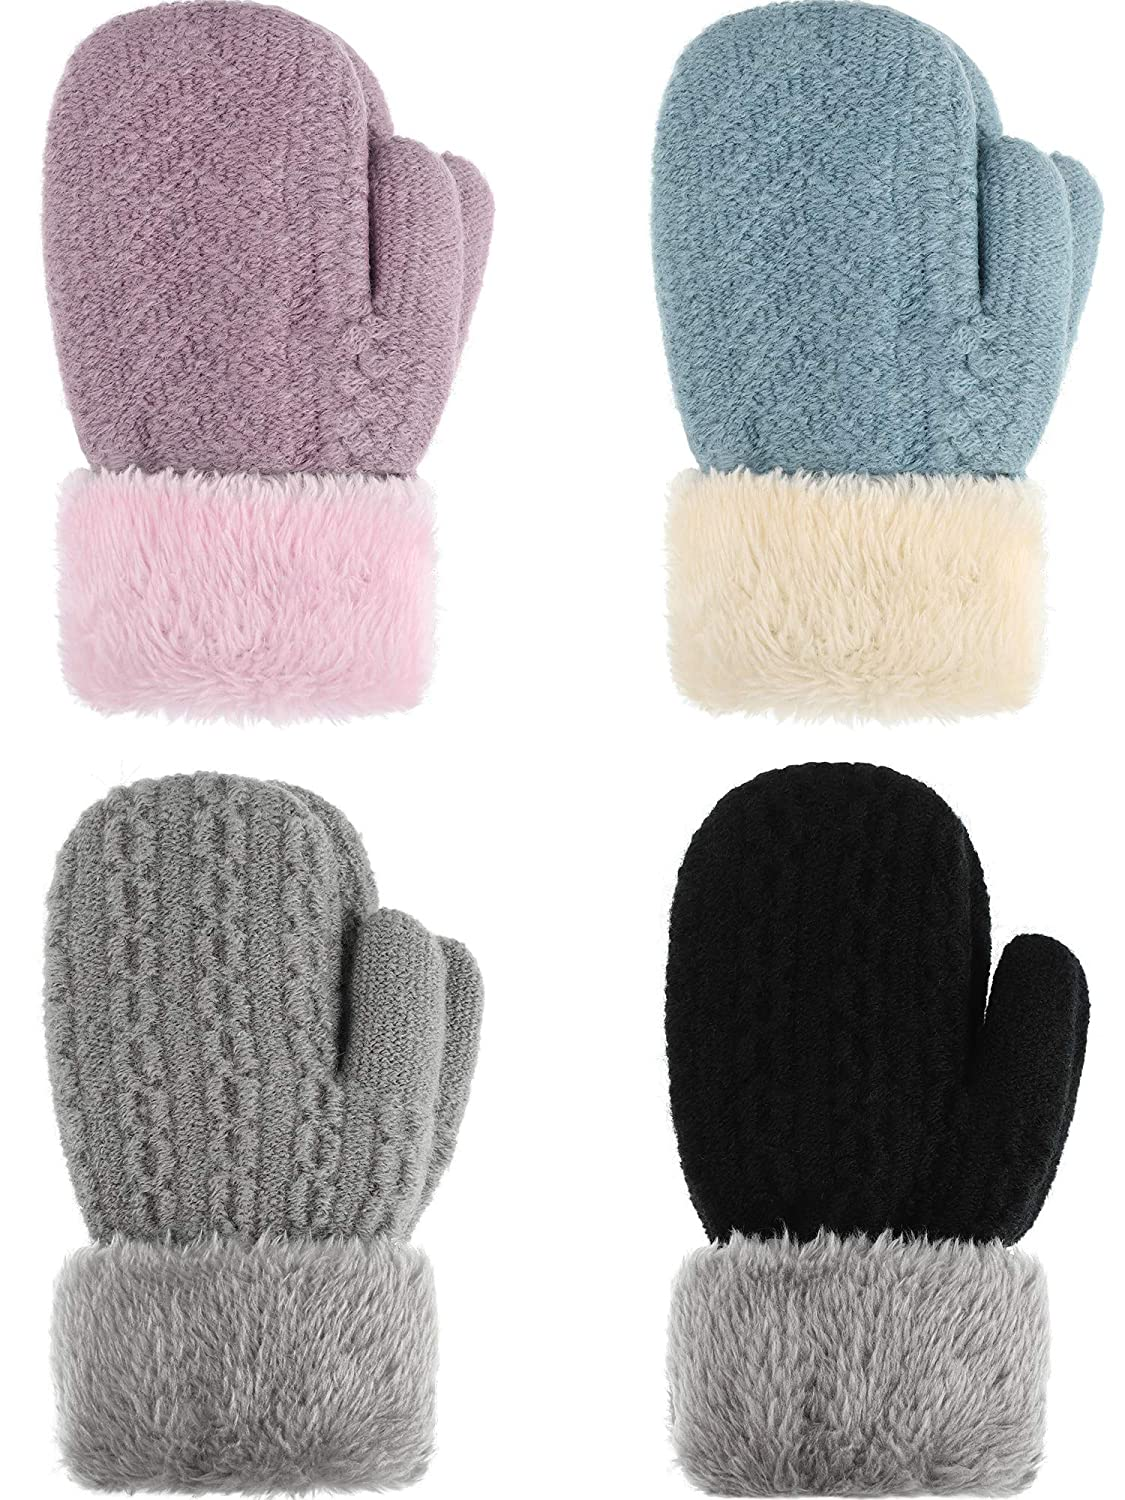 Magnificent Baby Unisex Fleece Baby Mittens Fuzzy Lined With Magnet Mitten Clips